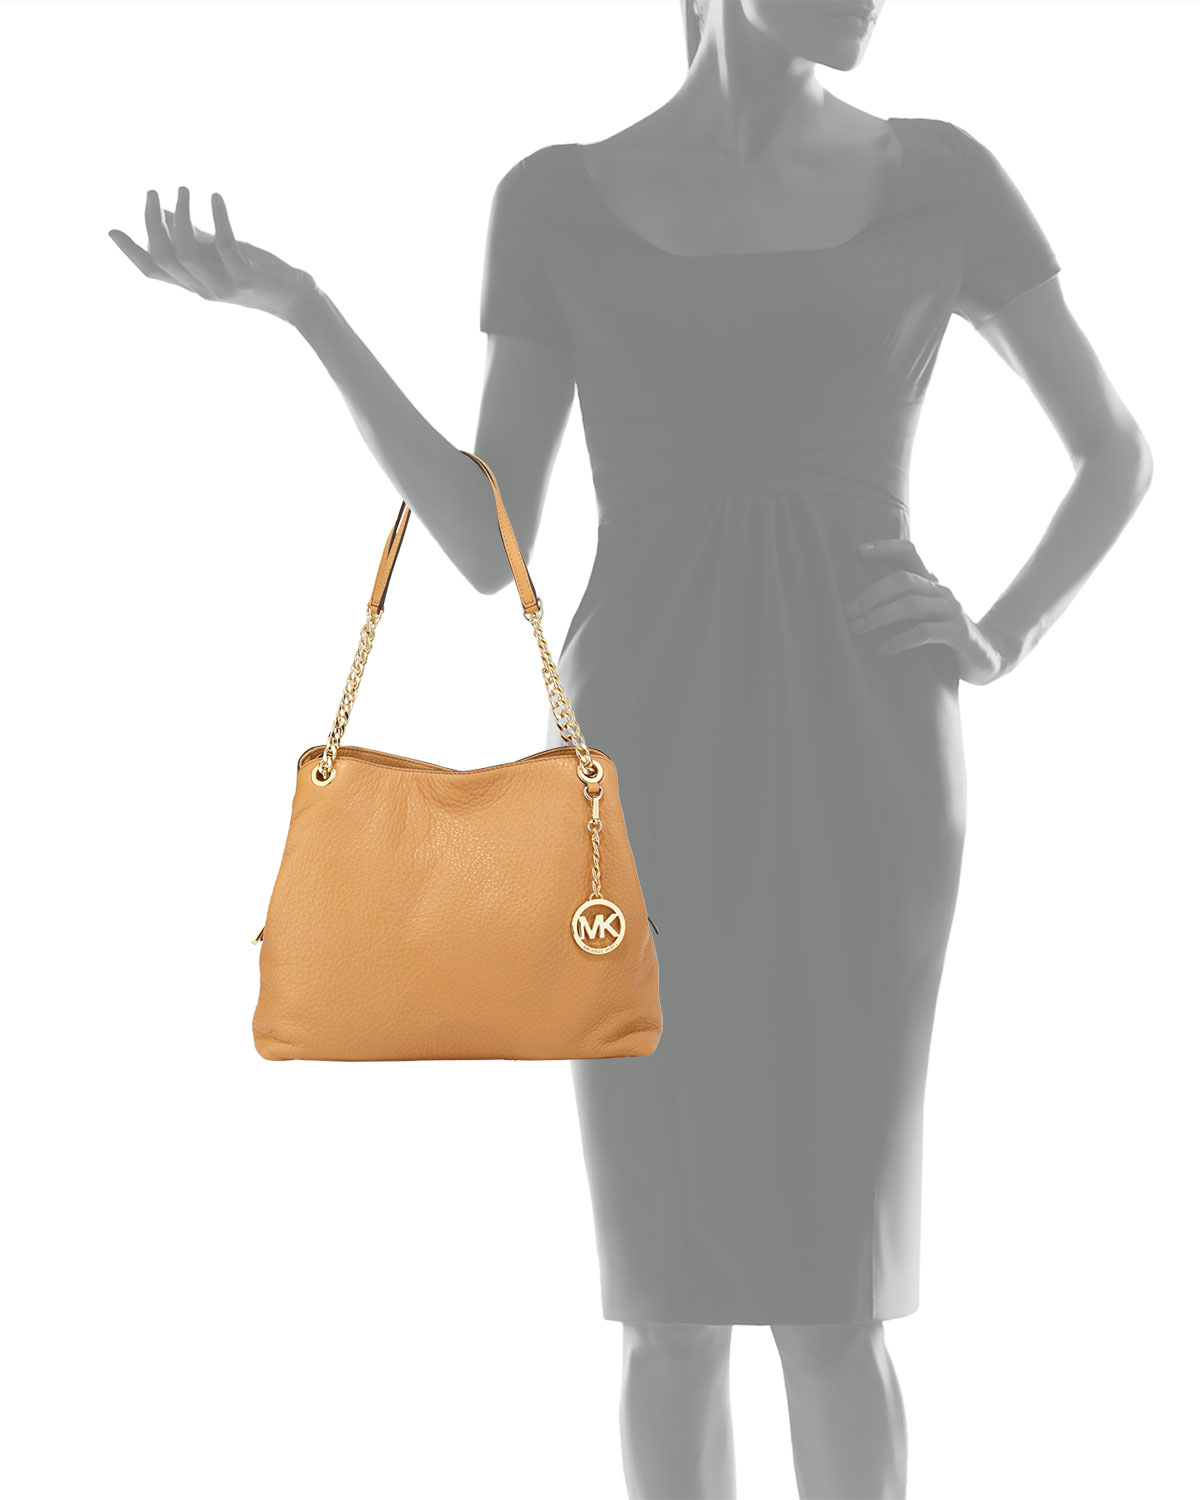 3a2785f2adec Gallery. Previously sold at: Neiman Marcus · Women's Michael By Michael  Kors Jet Set